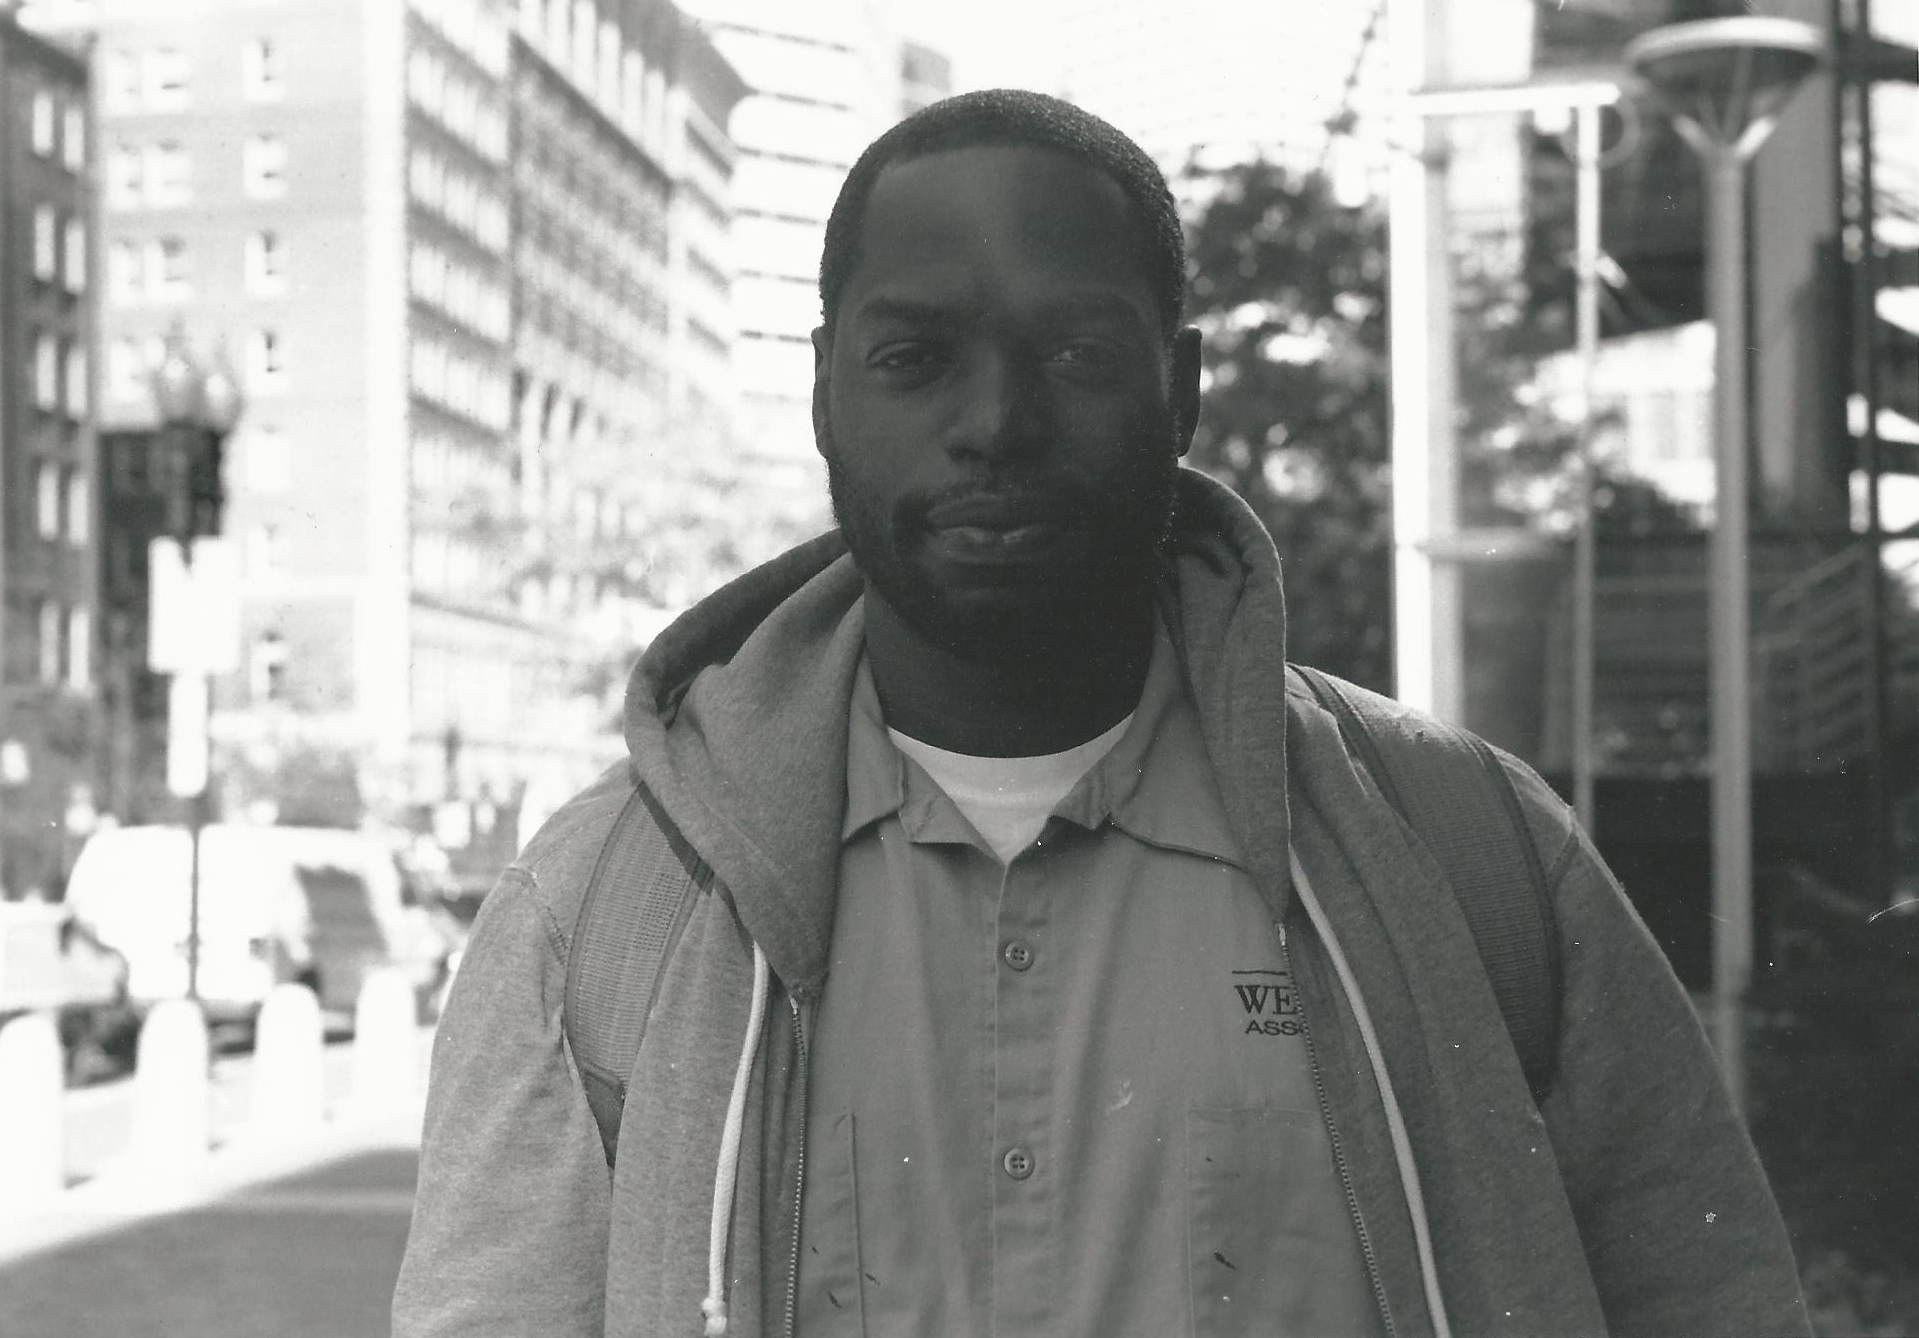 Finally got this photo developed. This was outside South Station. The man asked for a dollar for his bus ride home. I said I would give him a dollar if I could take his picture. This is the result. Canon AE-1 with a 50 mm f/1.8